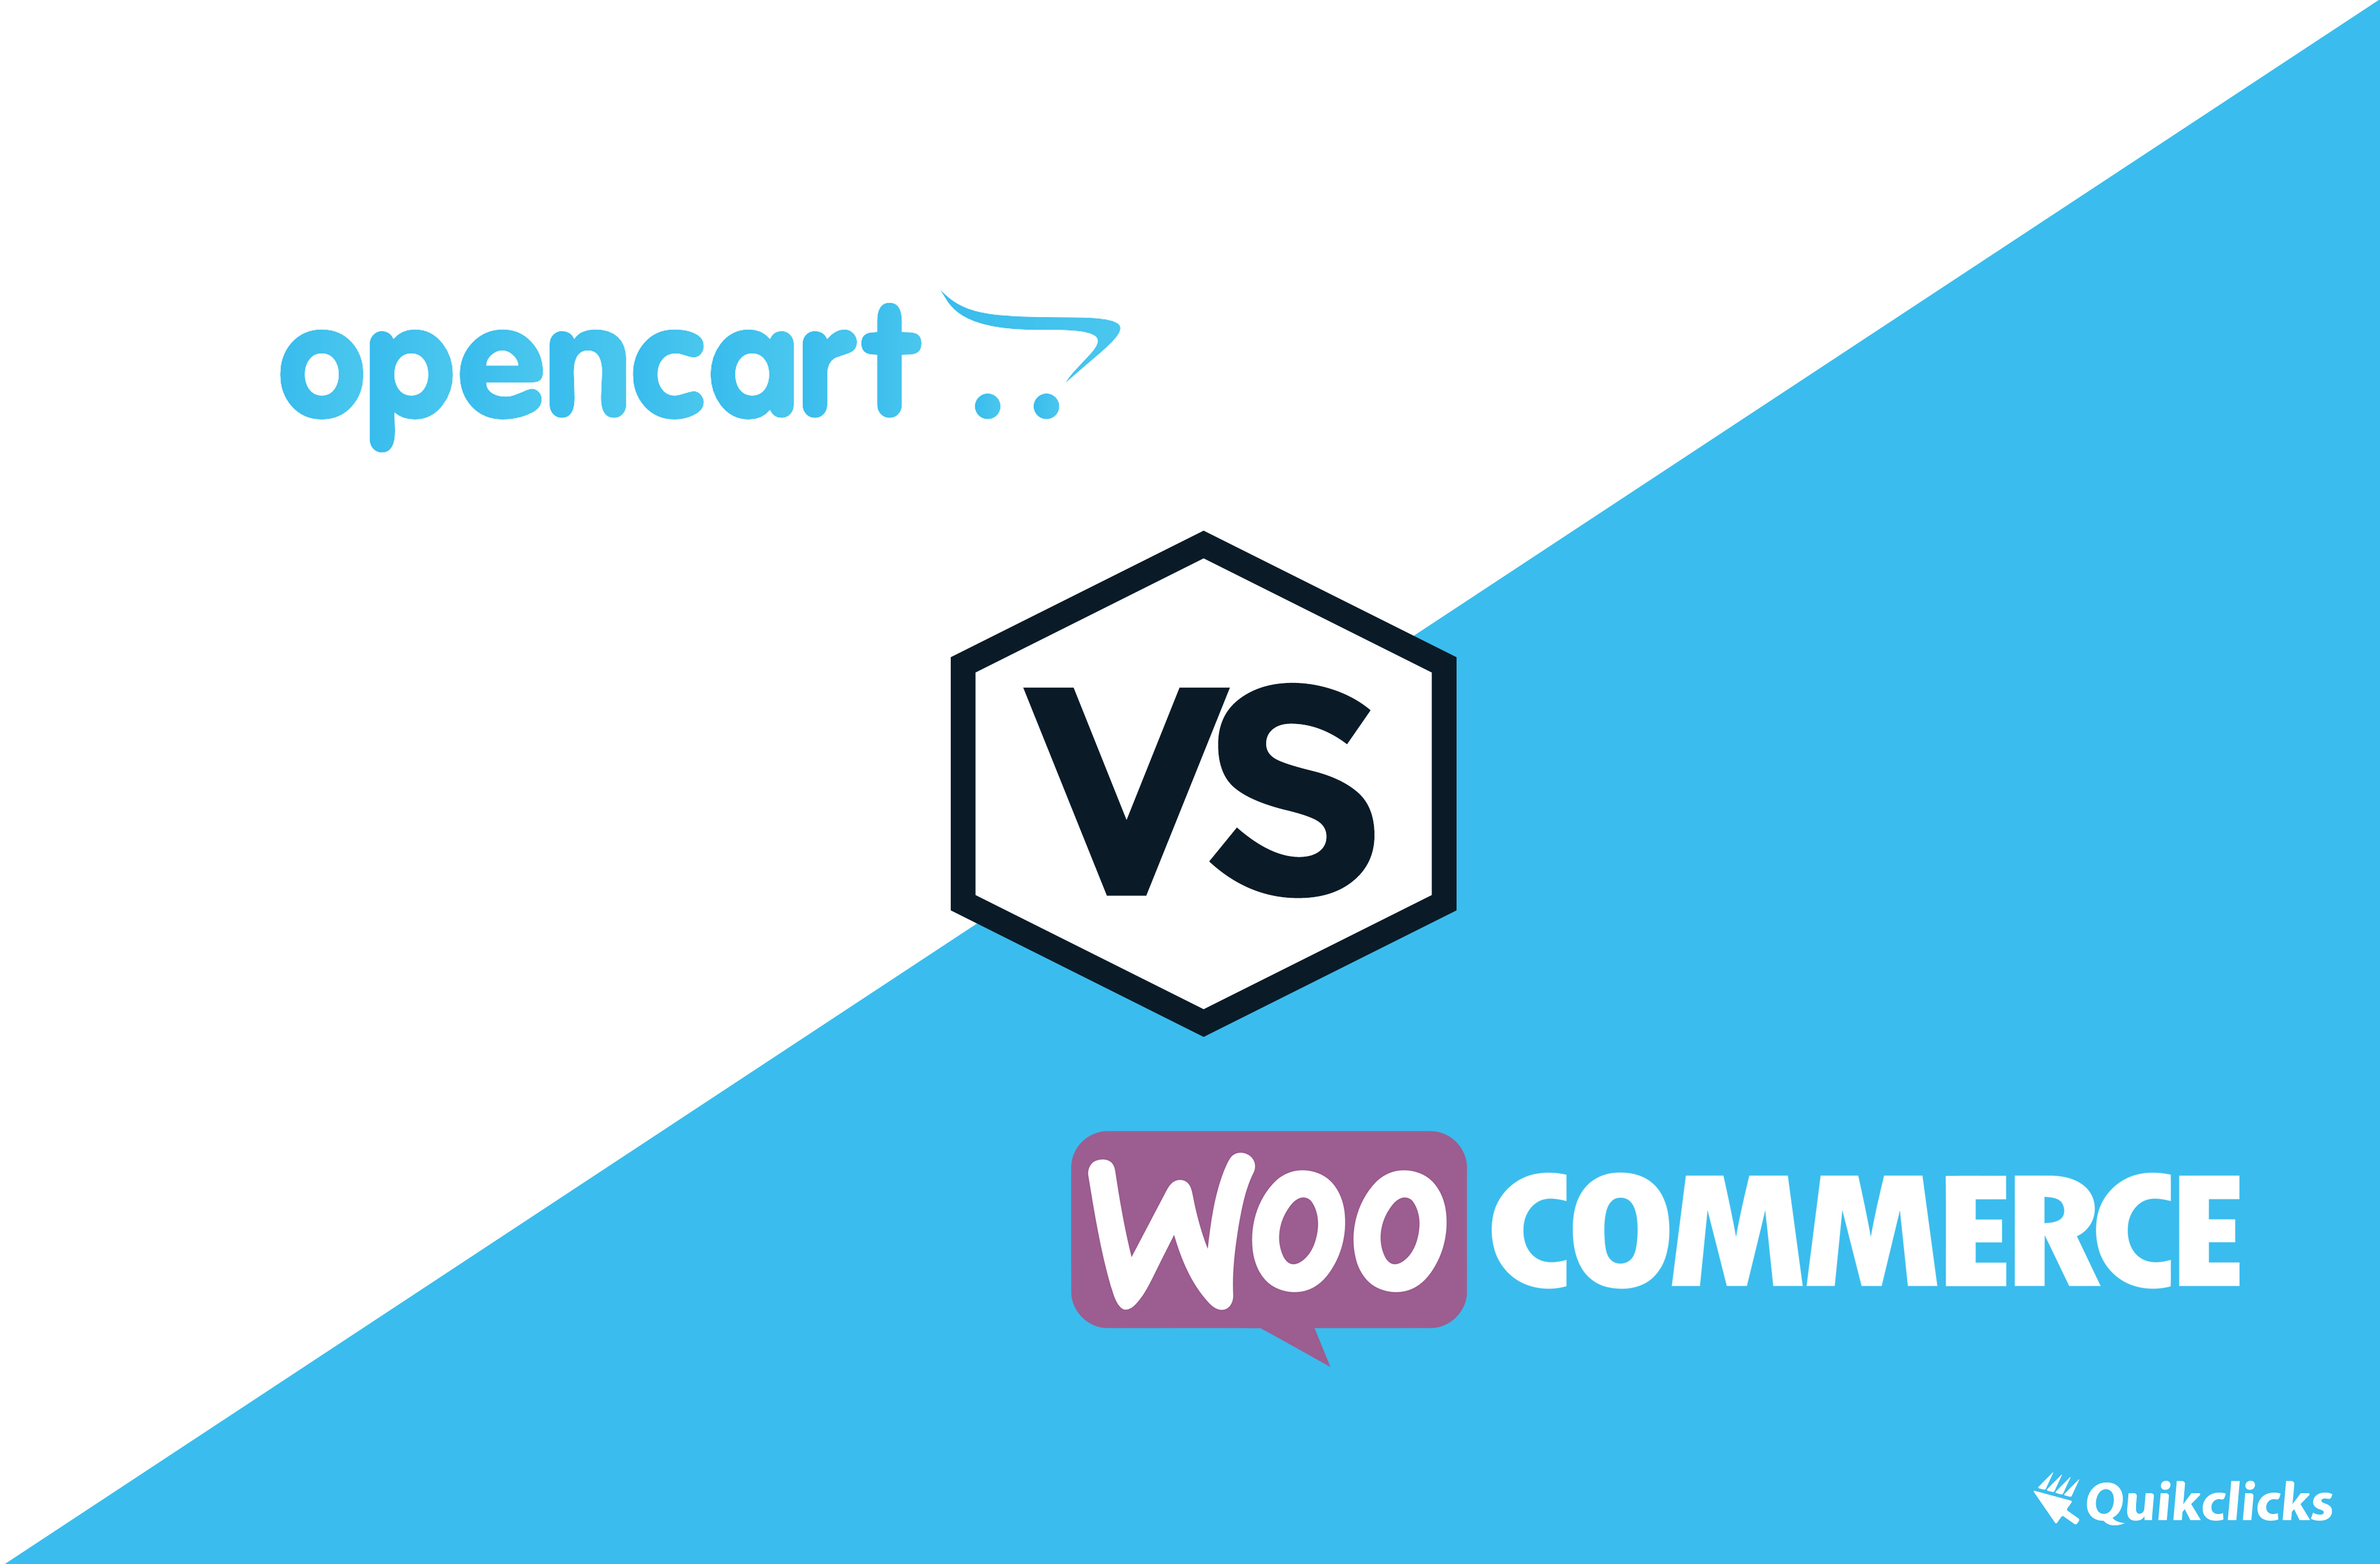 WooCommerce vs OpenCart